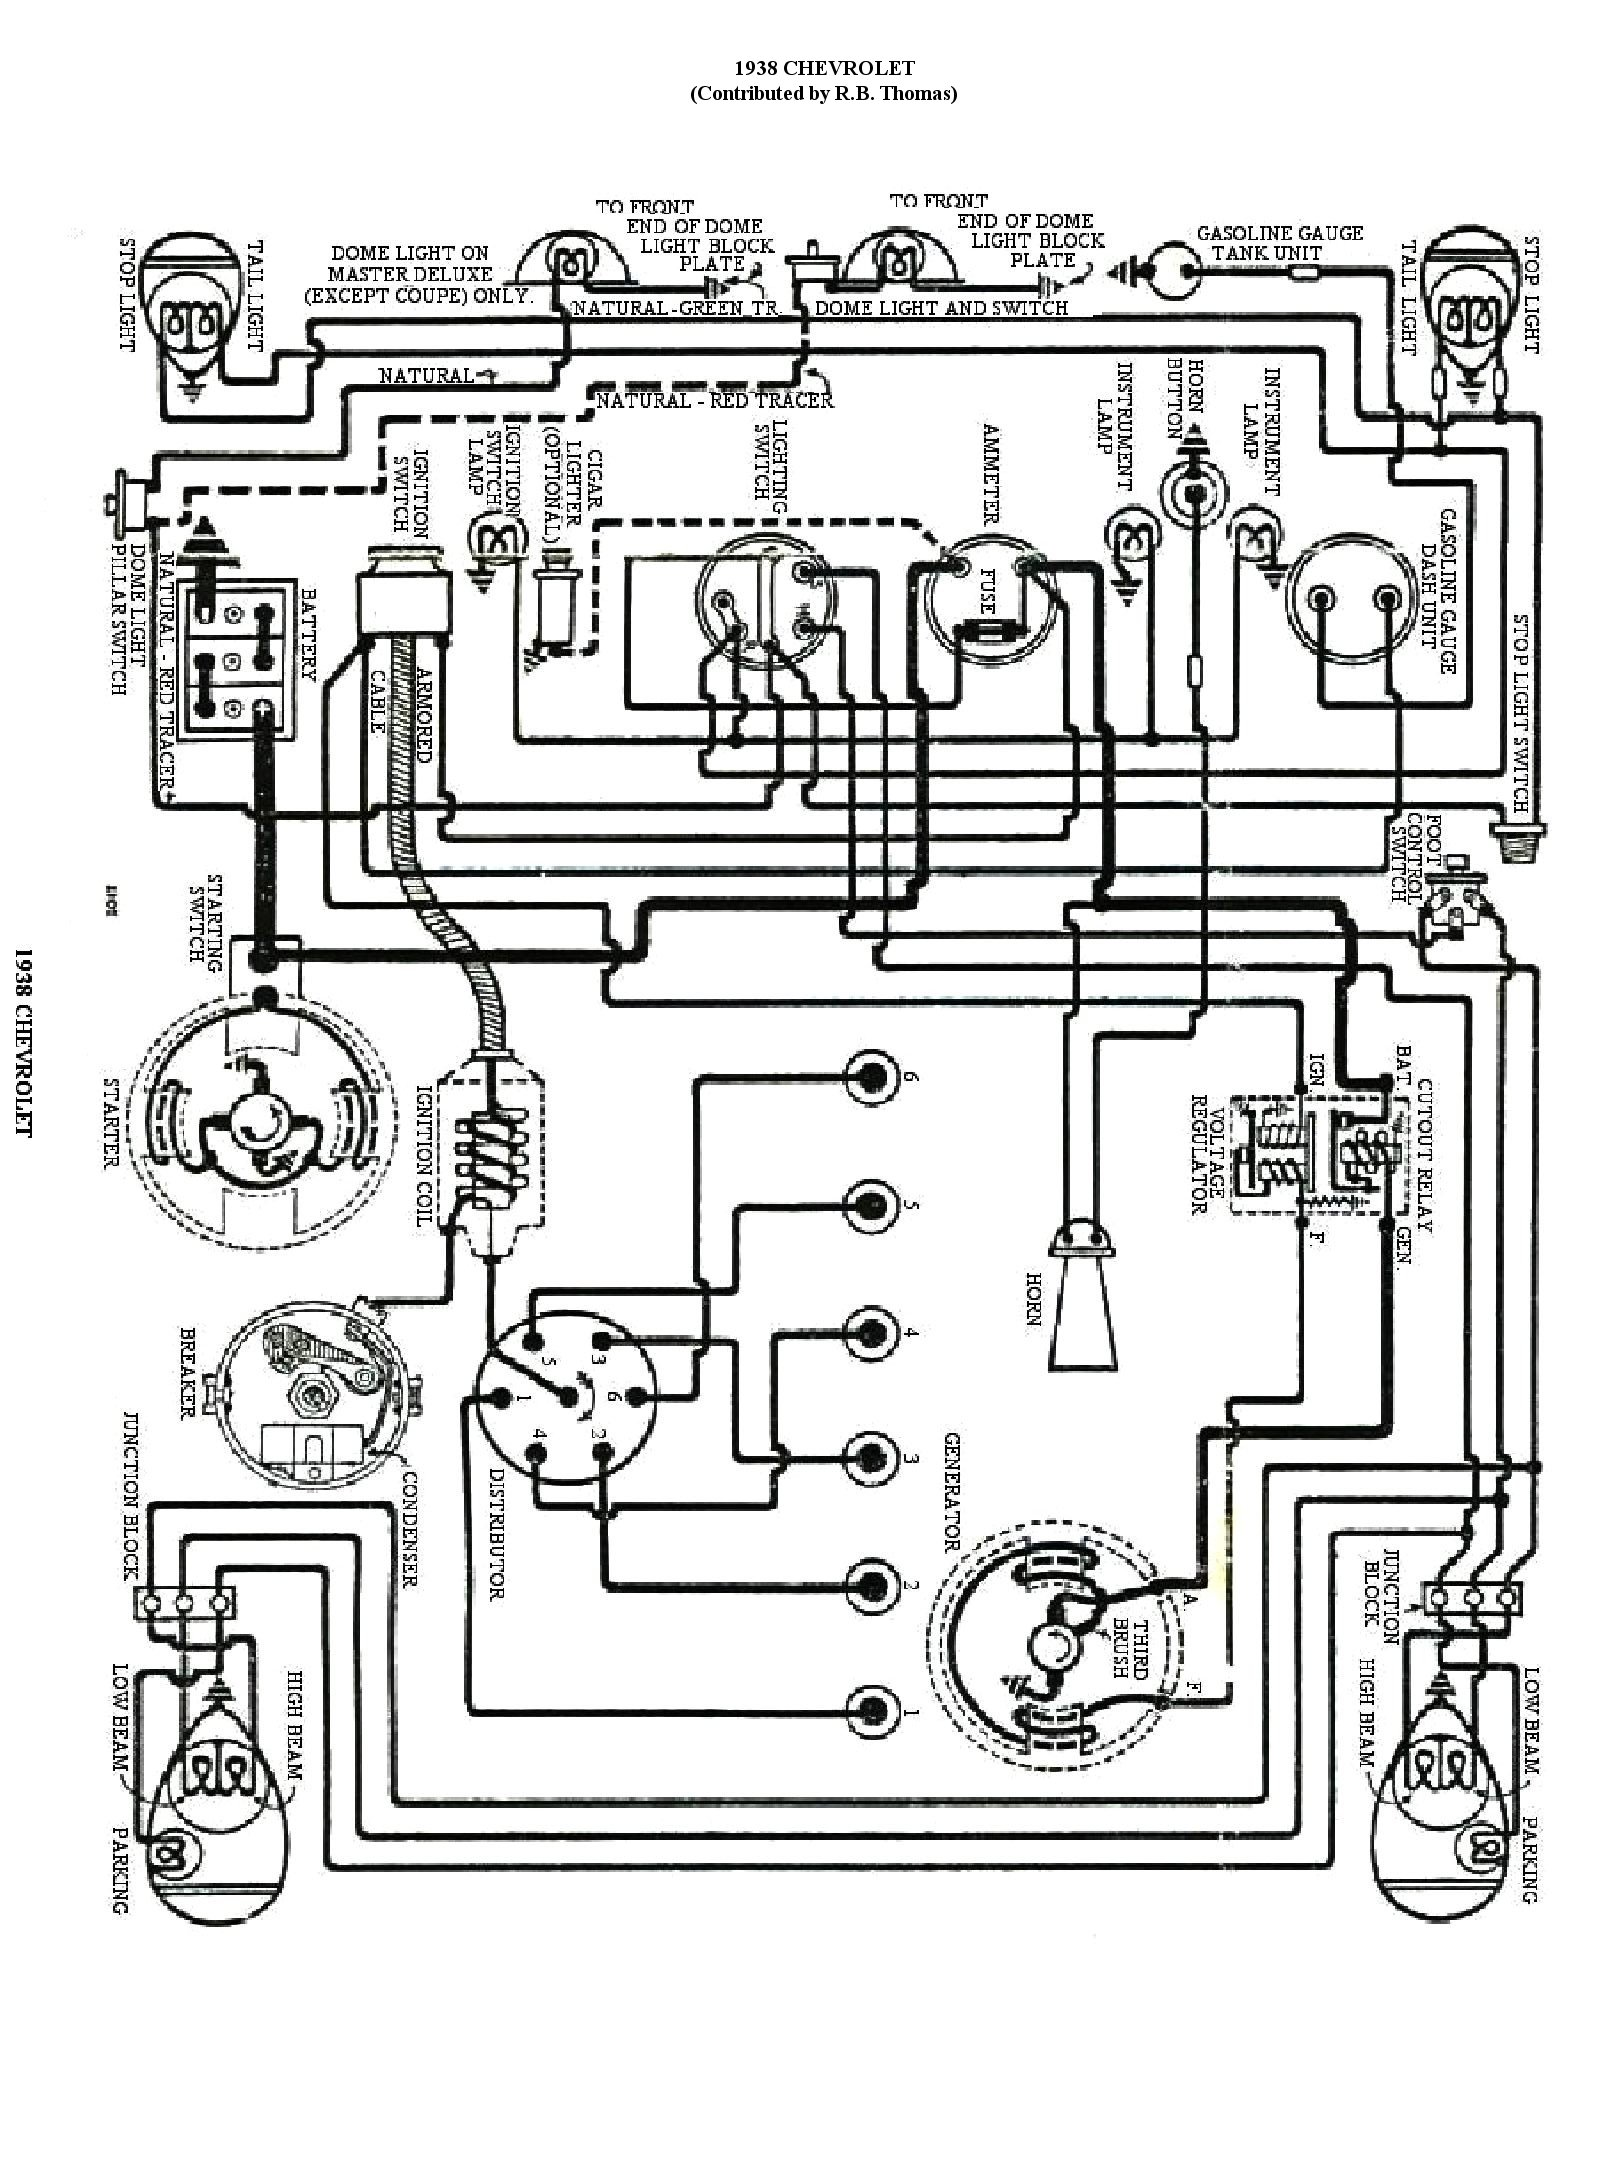 Wiring Diagram PDF: 1939 Plymouth Wiring Harness